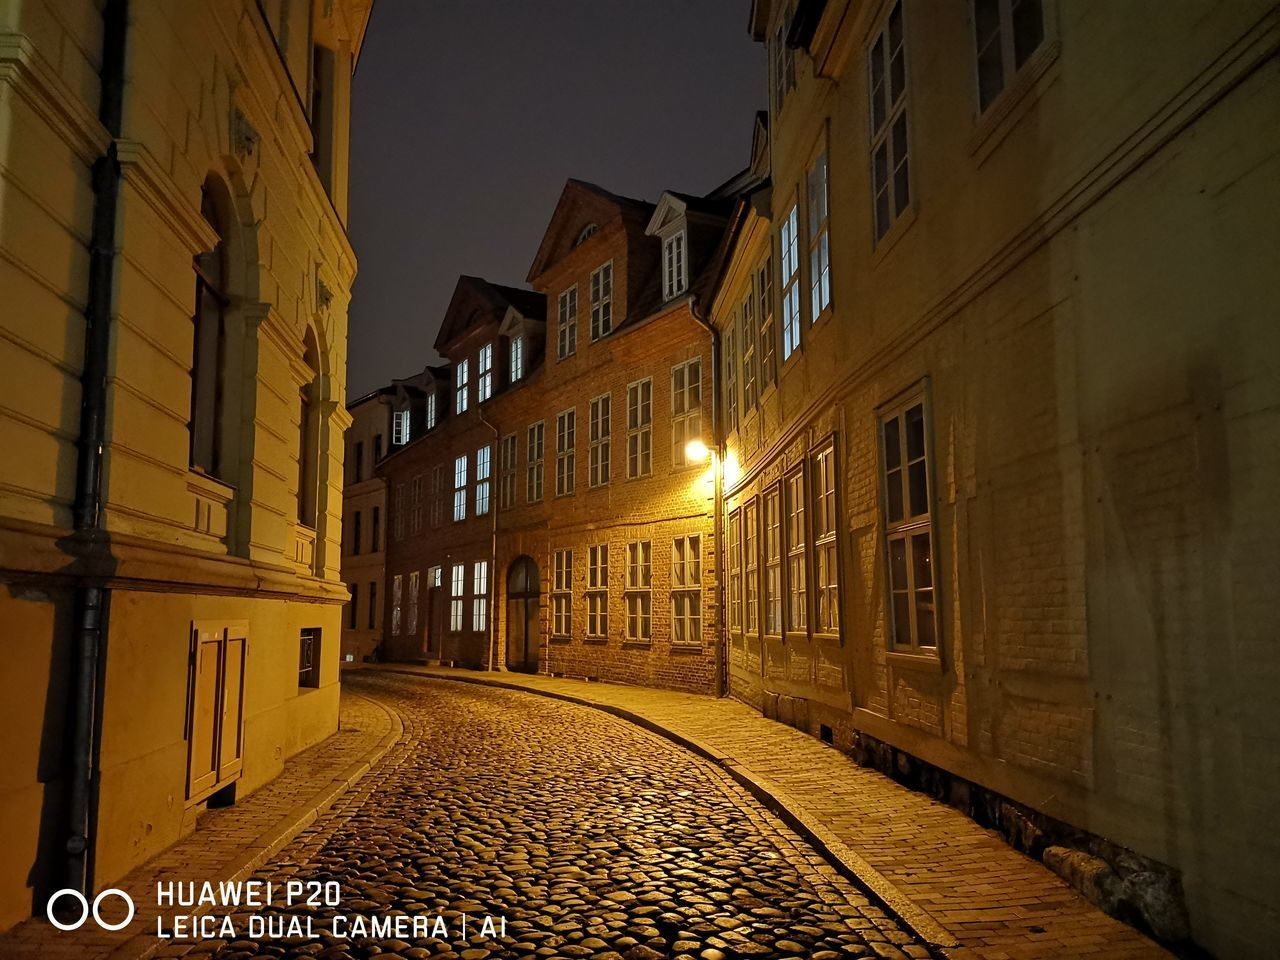 architecture, building exterior, built structure, building, street, illuminated, city, residential district, lighting equipment, window, the way forward, direction, no people, night, cobblestone, nature, outdoors, street light, empty, alley